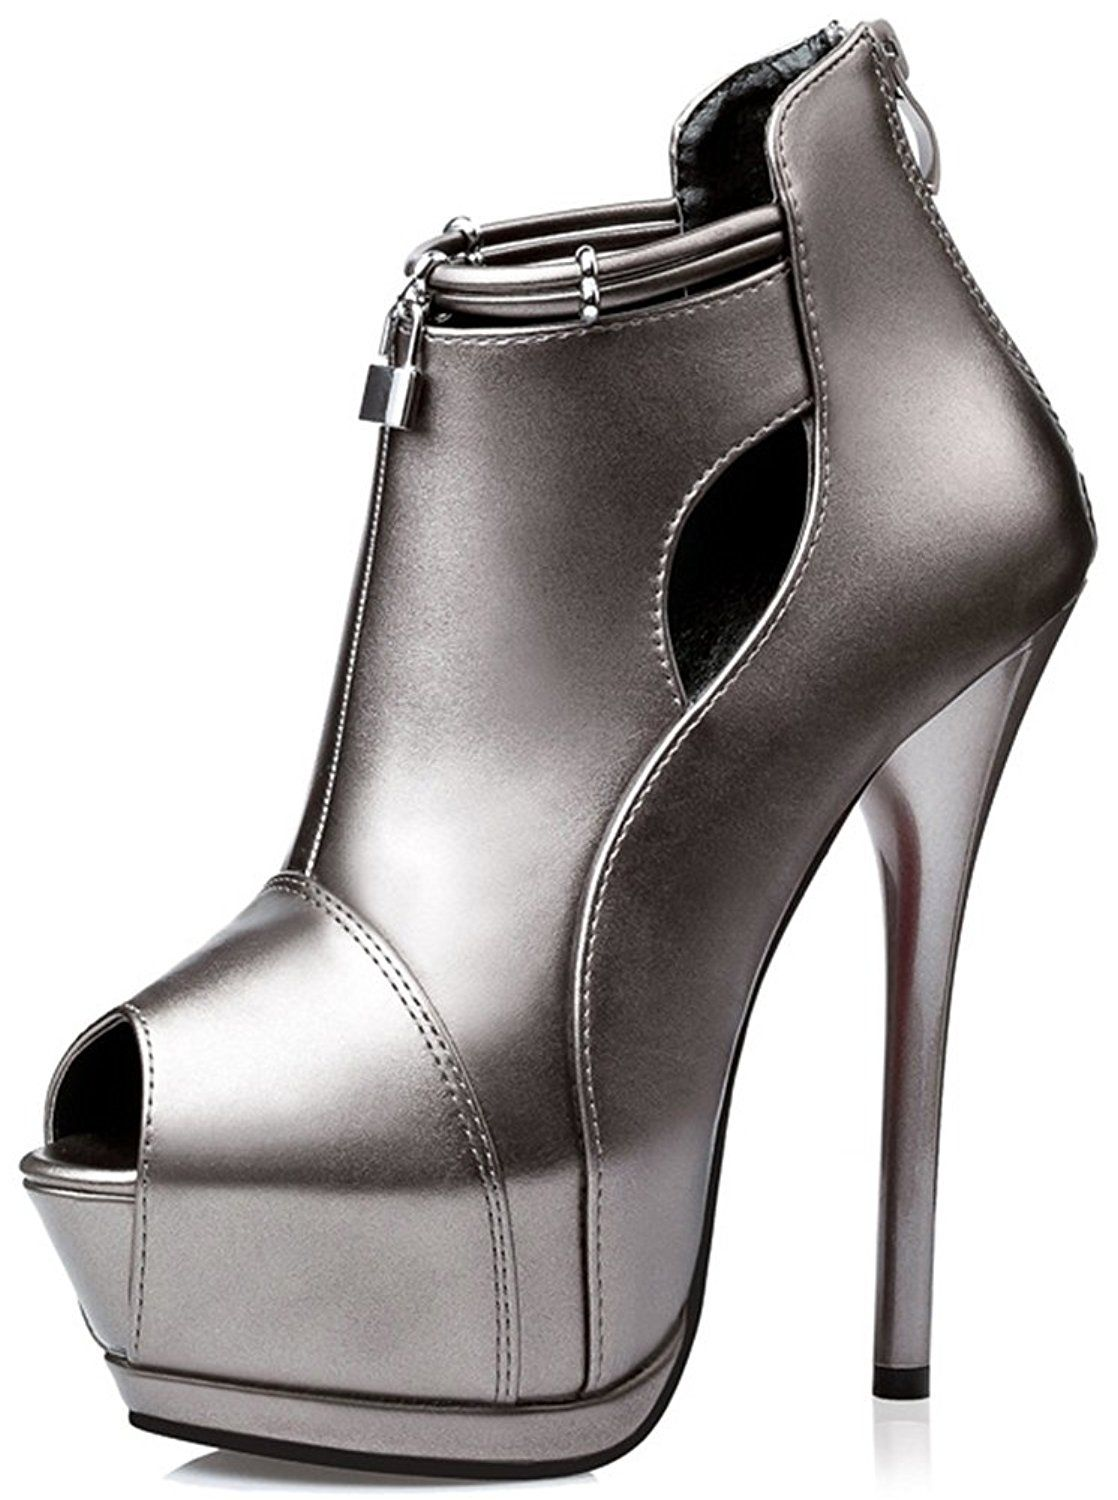 Summerwhisper Women's Sexy Peep Toe Back Zipper Pumps Stiletto Extreme High Heel Platform Ankle Boots ** Continue to the product at the image link.